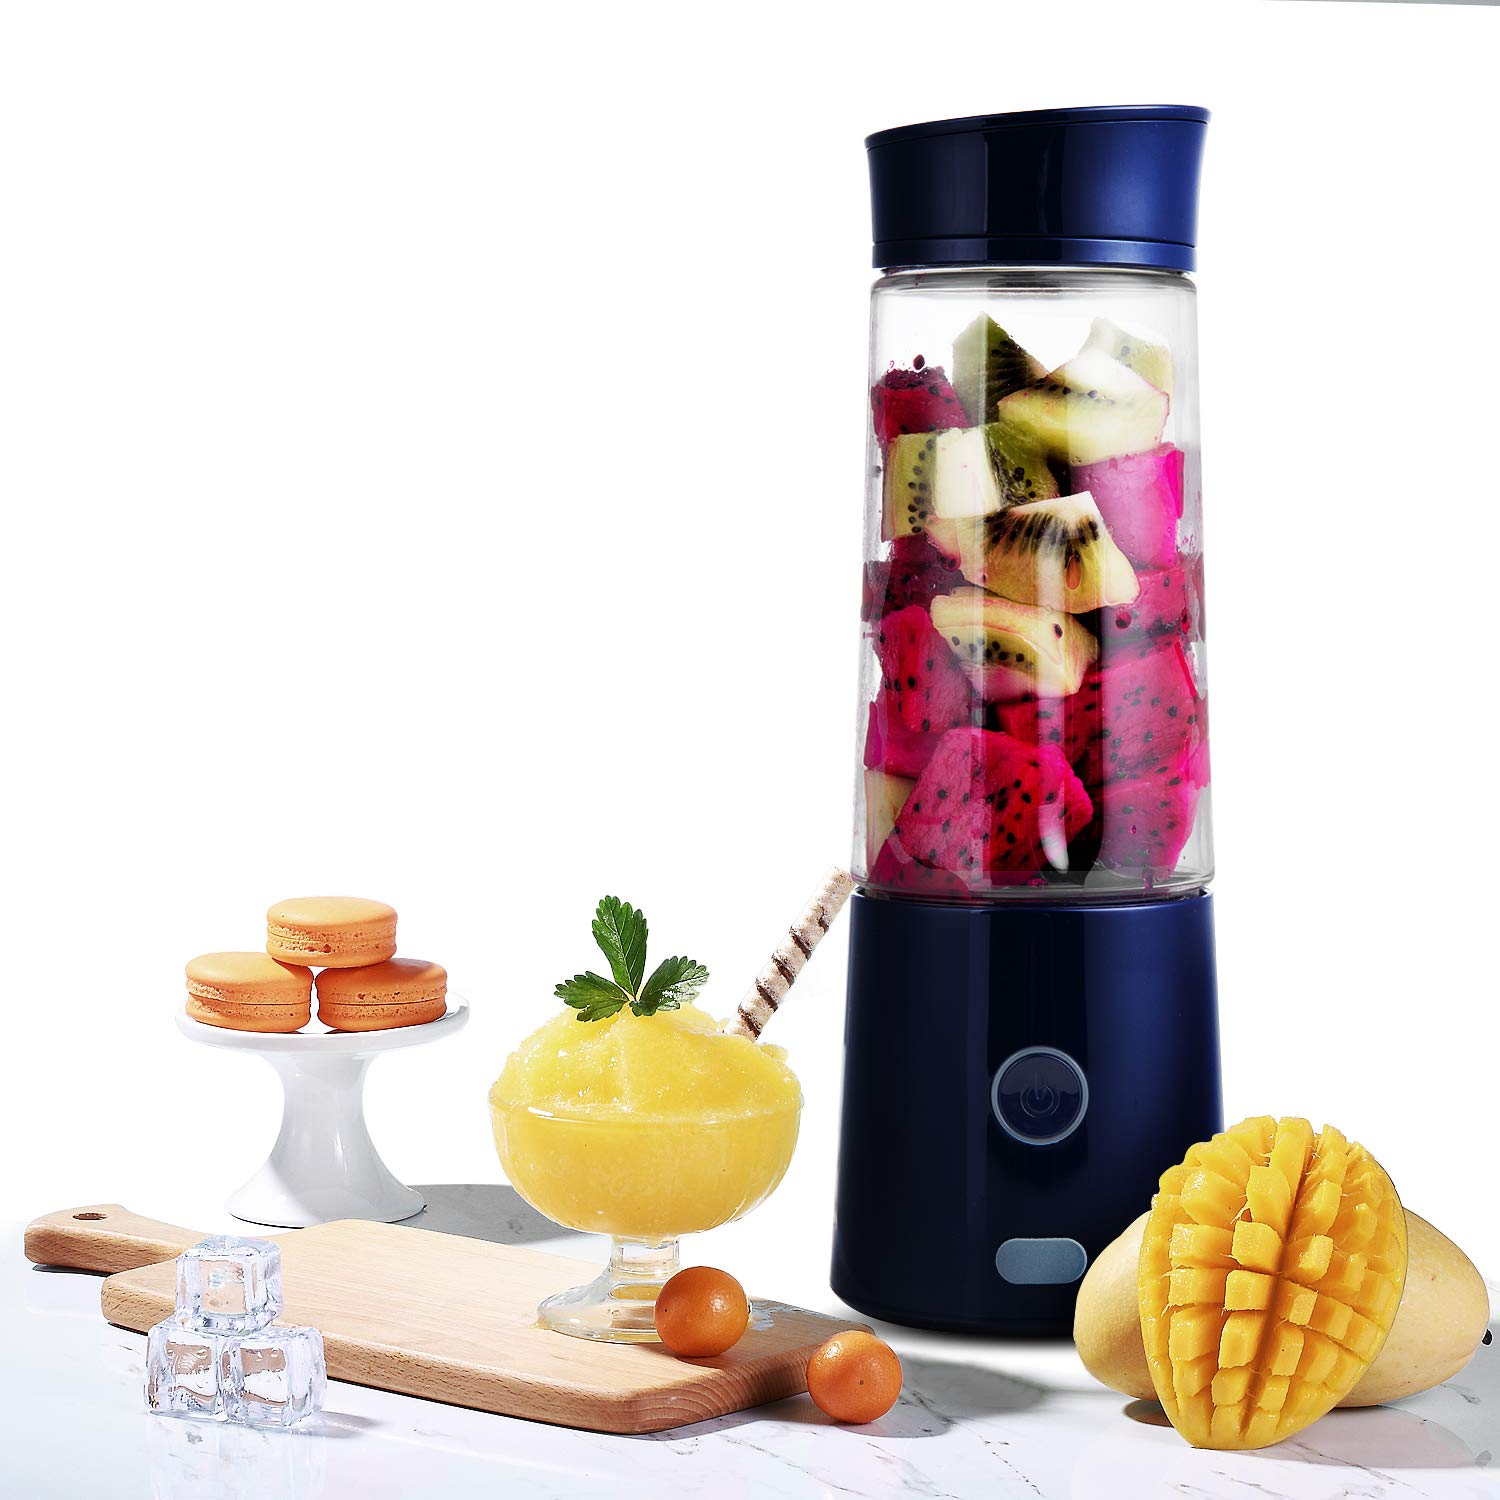 Portable Blender, Kacsoo Macaron M620 Mini Blender Personal Smoothie Fruit Mixer Juicer Cup, Single Serve, Multifunctional Lightweight USB Rechargeable Travel Blender for Shakes and Smoothies, with 5200 mAh Rechargeable Battery, FDA BPA Free (Blue)